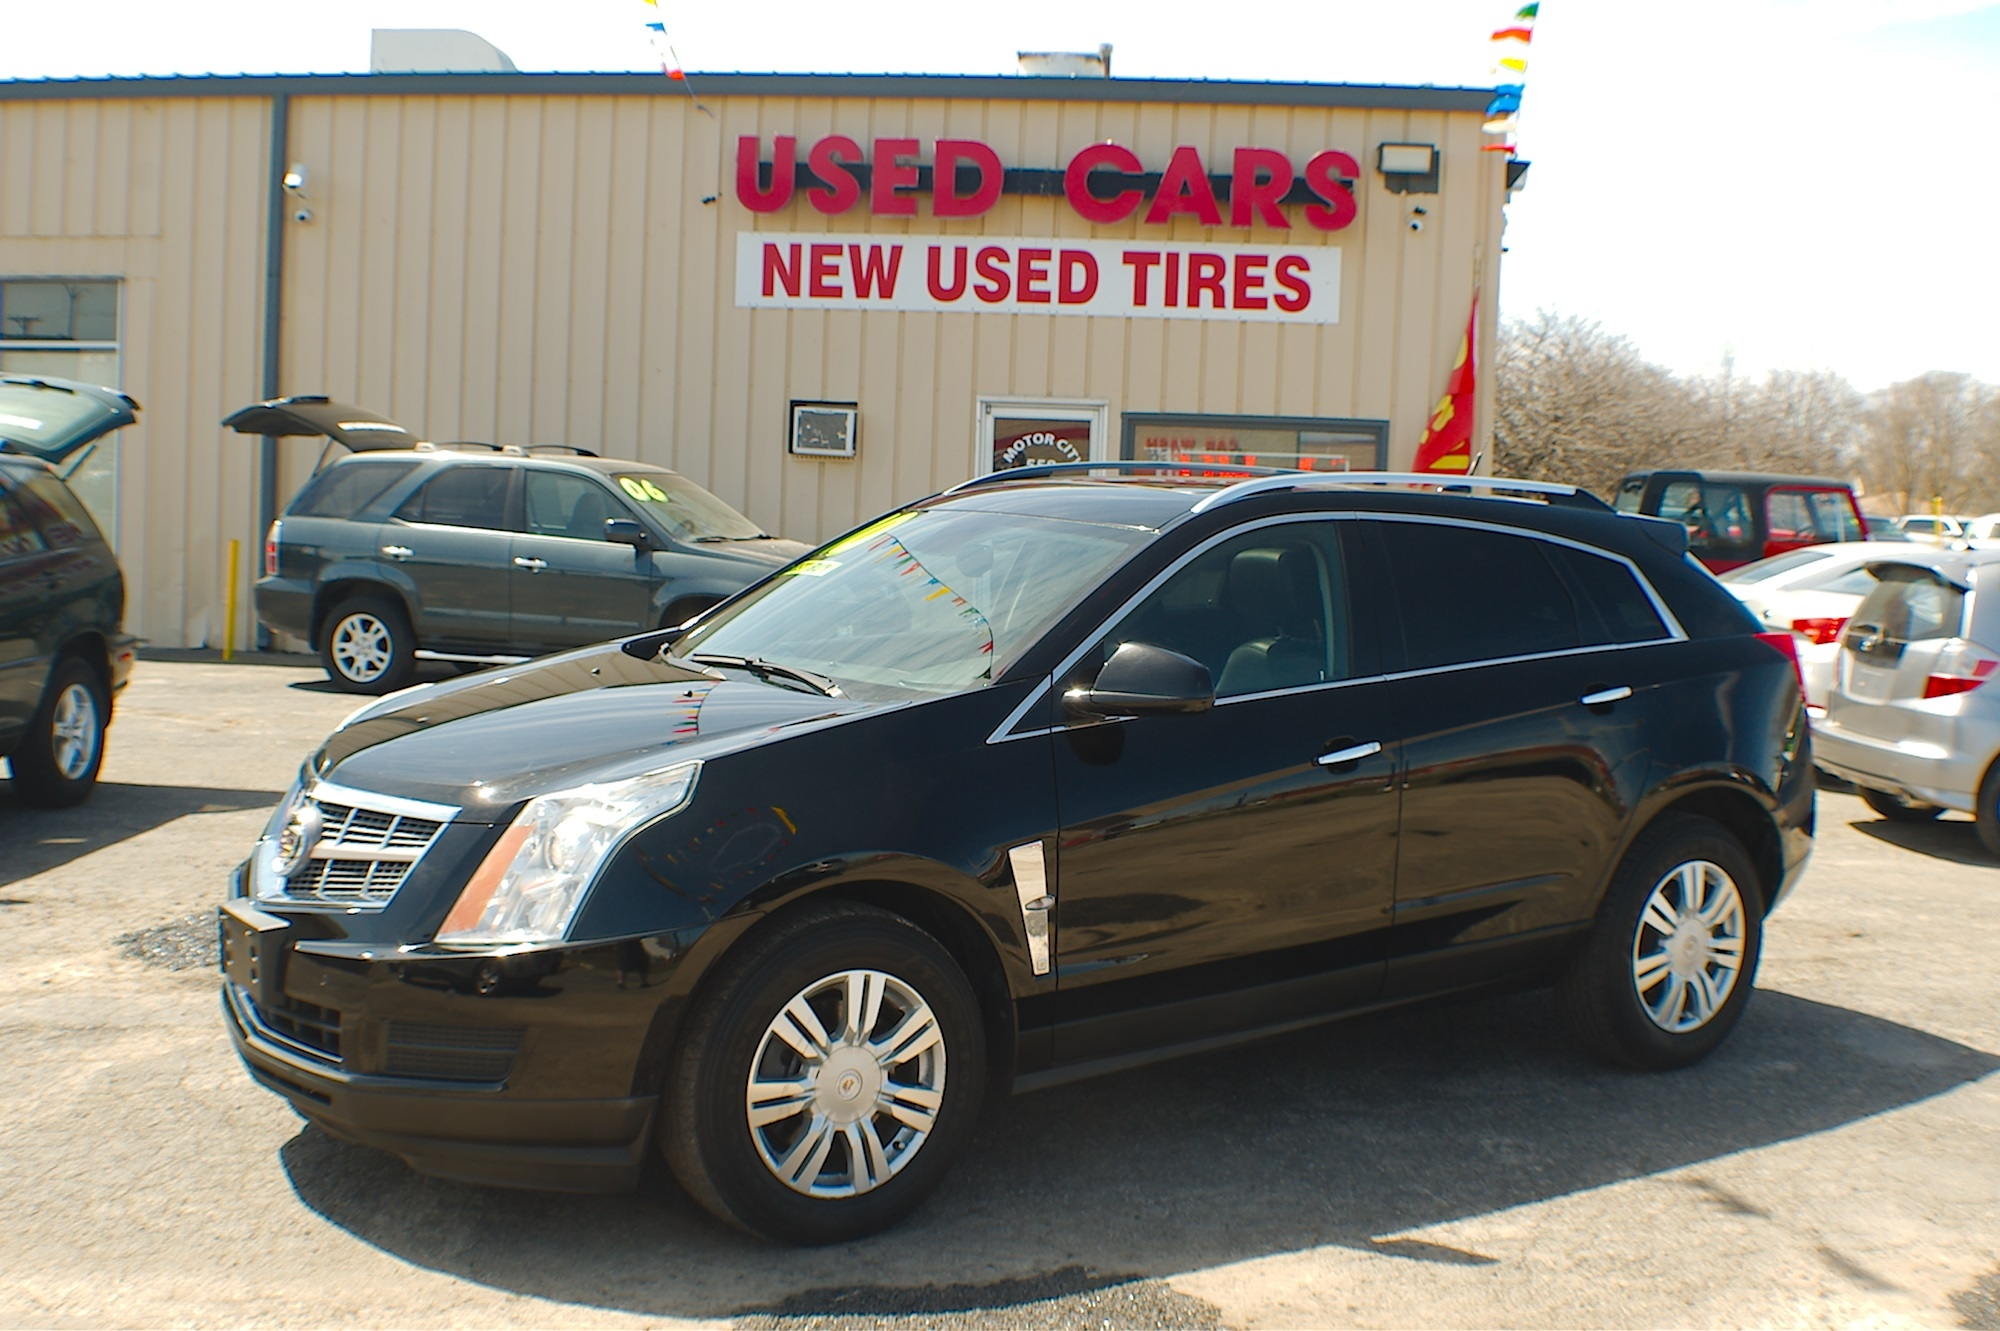 2010 Cadillac SRX Black Wagon Used Car Sale Antioch Zion Waukegan Lake County Illinois